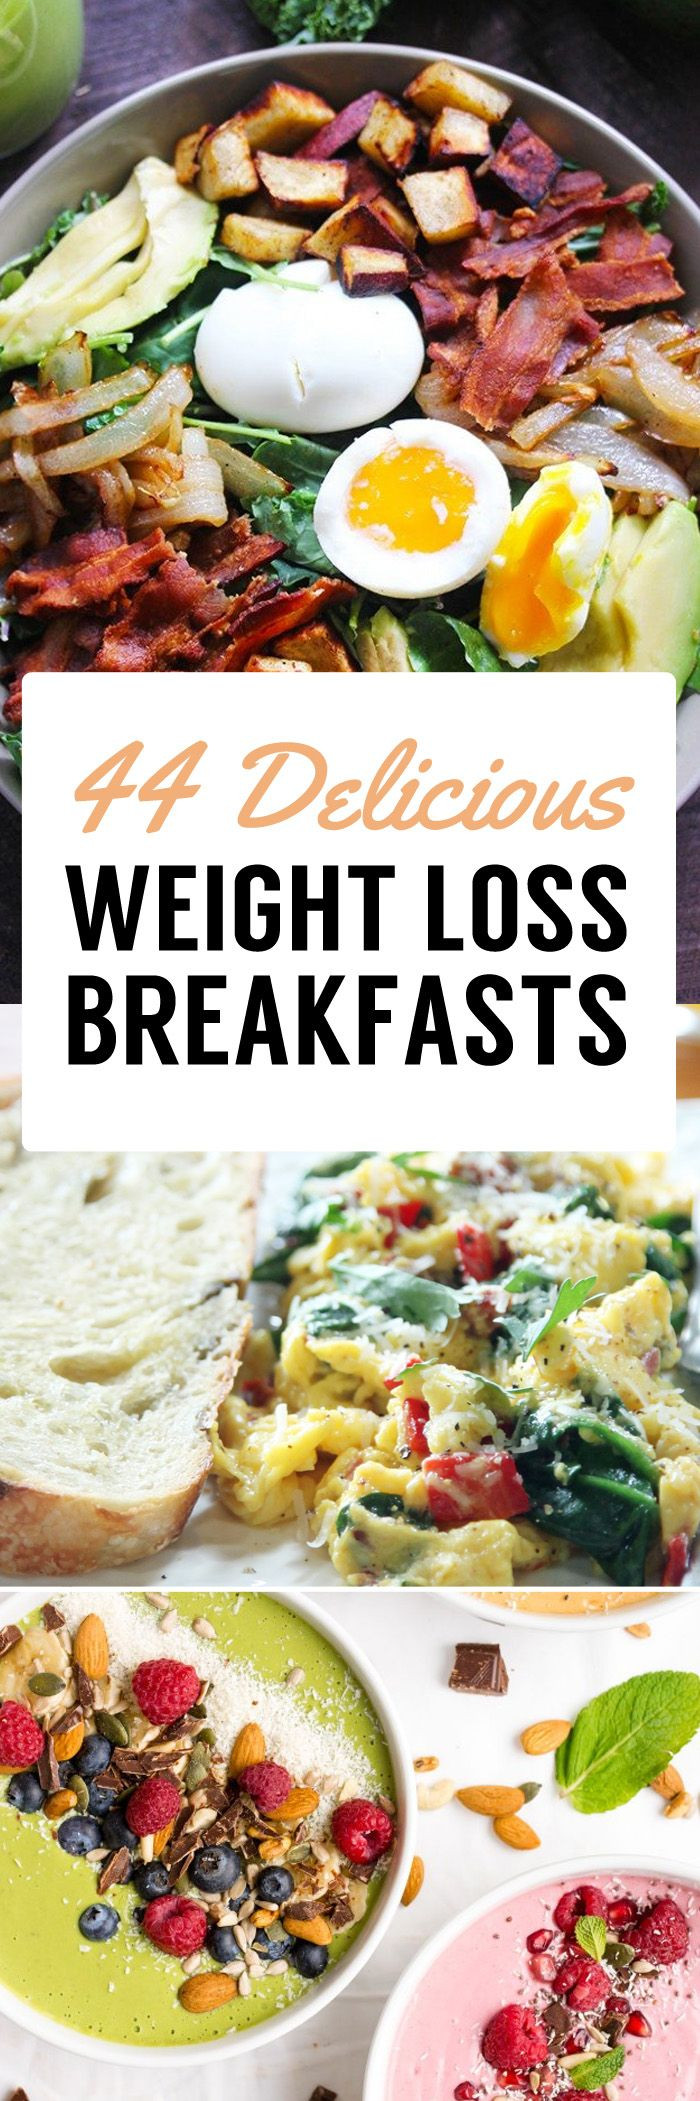 Healthy Breakfast Recipes For Weight Loss  44 Weight Loss Breakfast Recipes To Jumpstart Your Fat